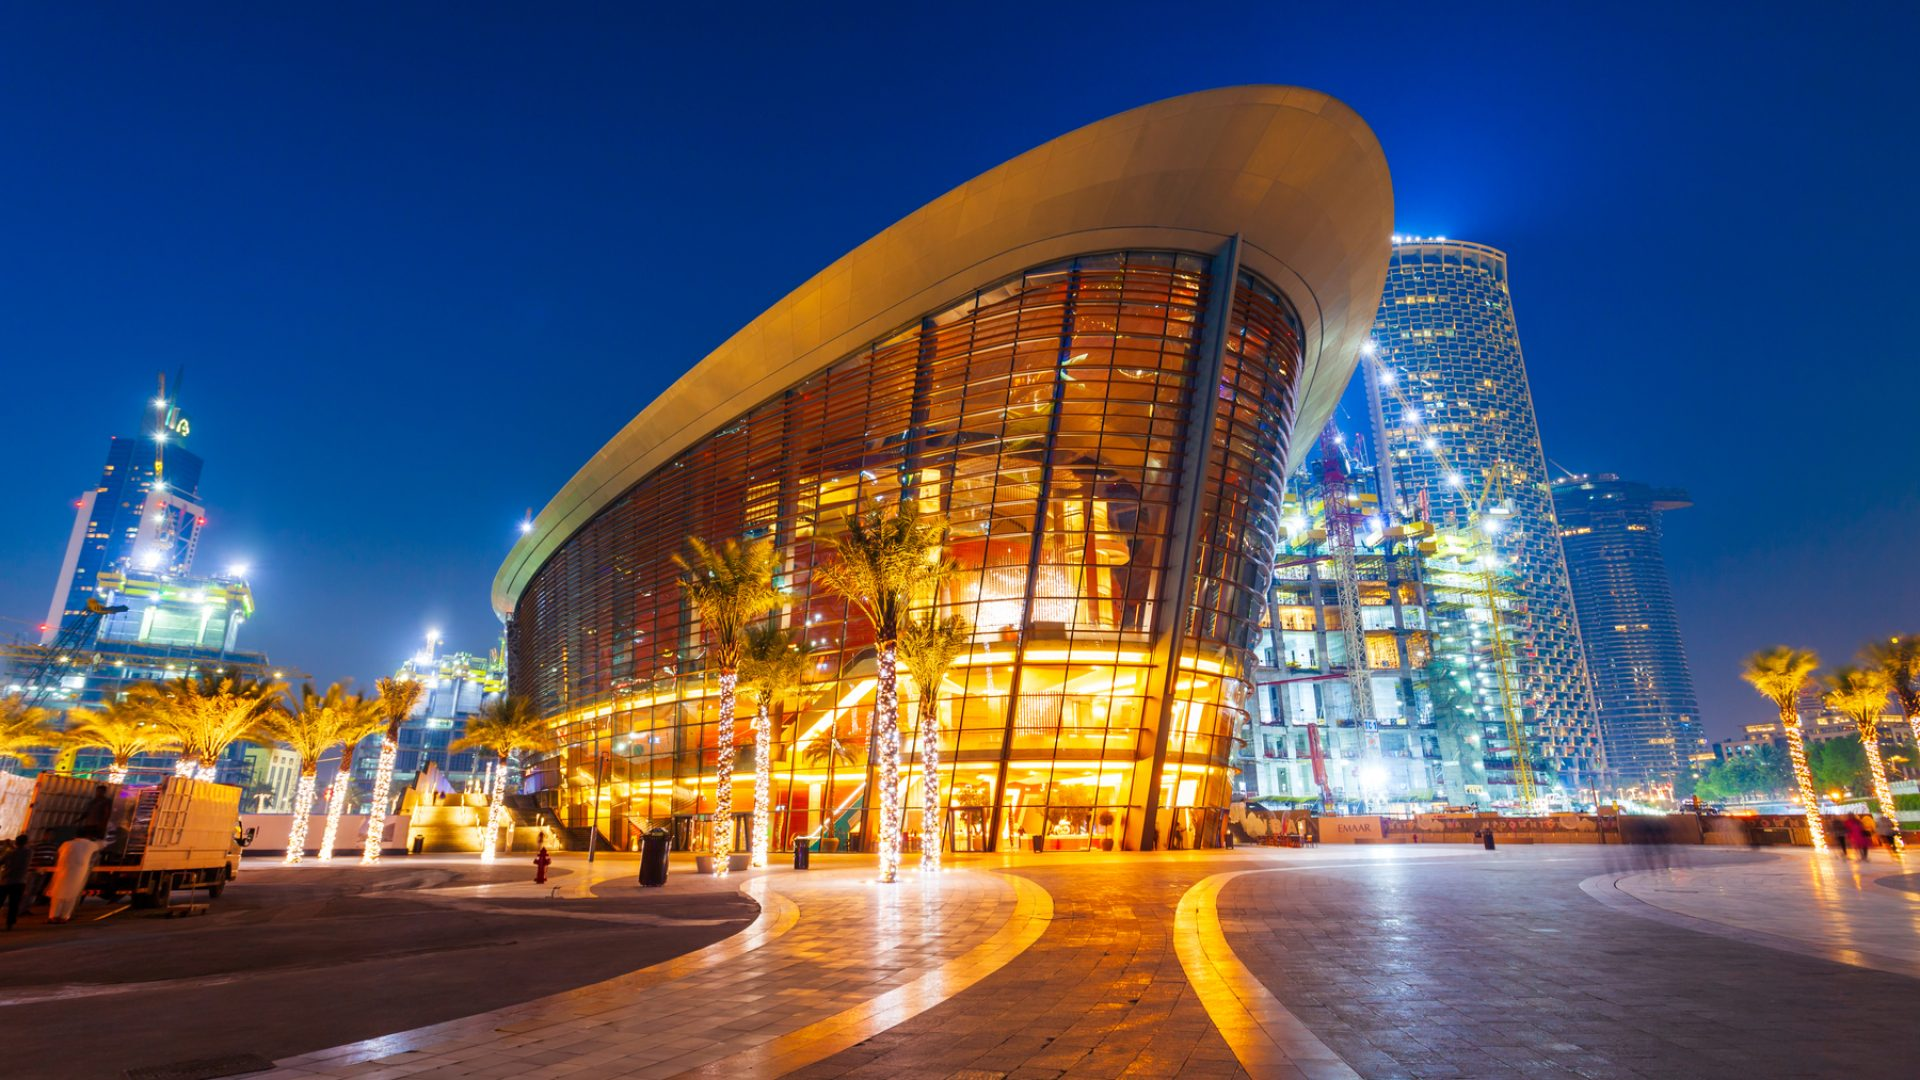 Culture and entertainment in the UAE